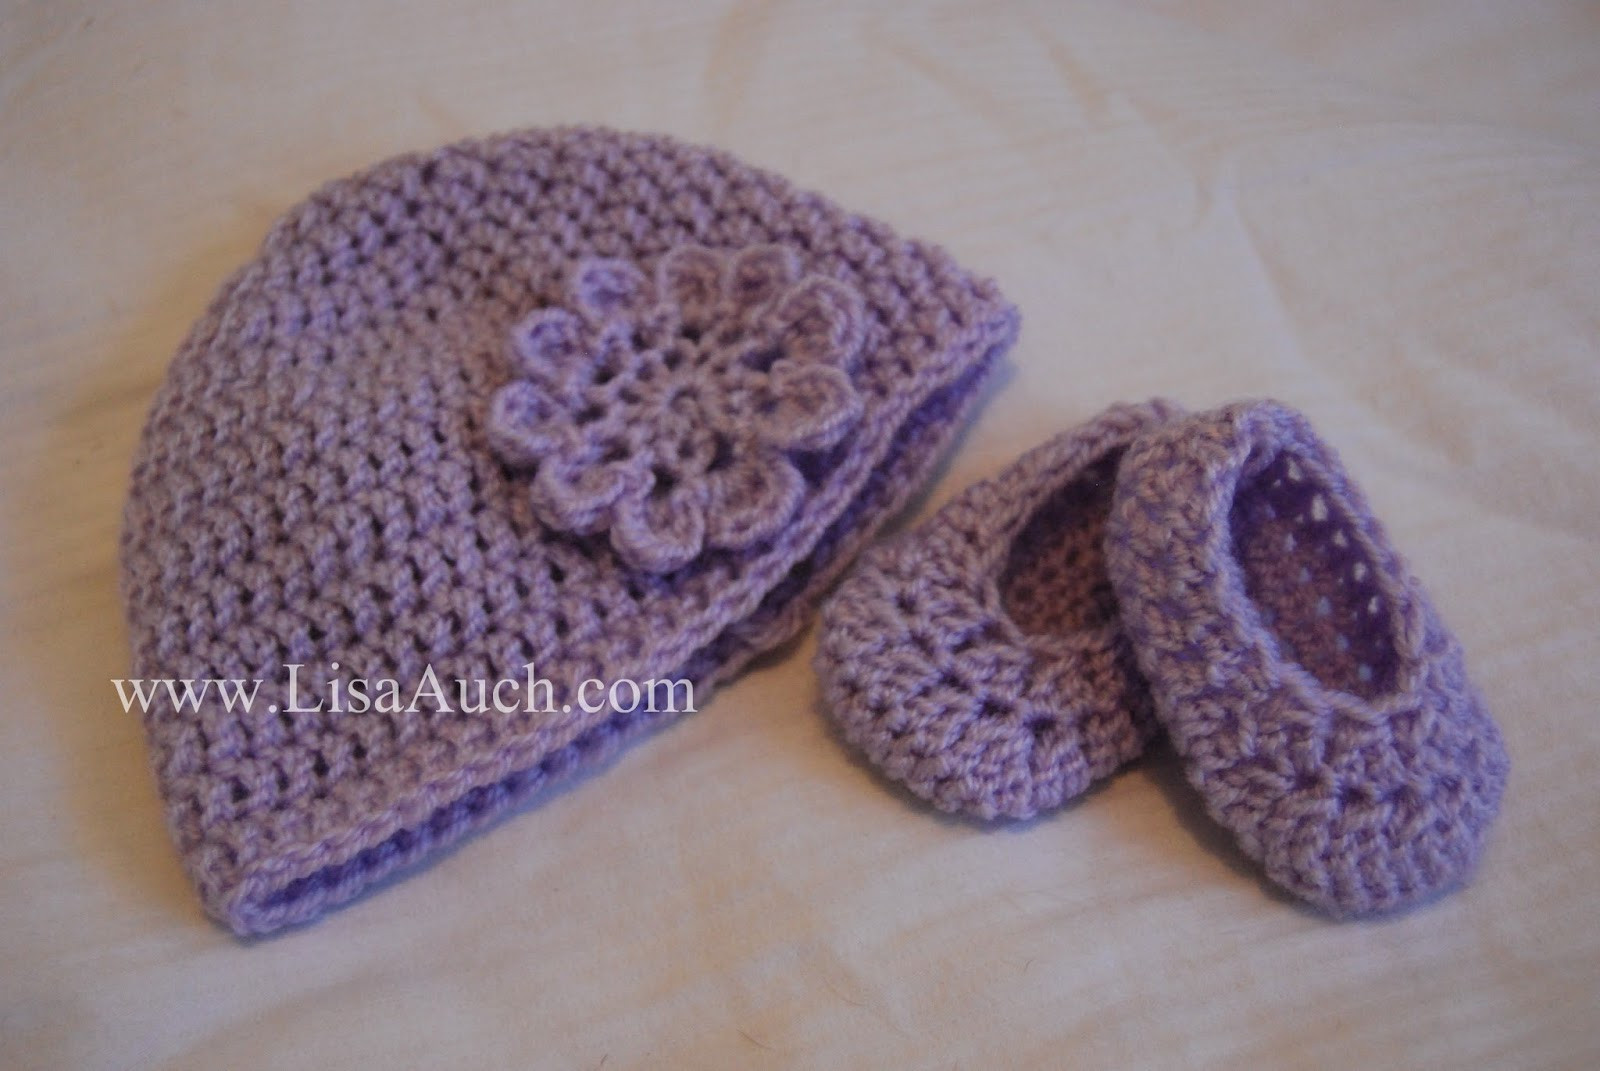 Crochet Patterns Baby Shoes